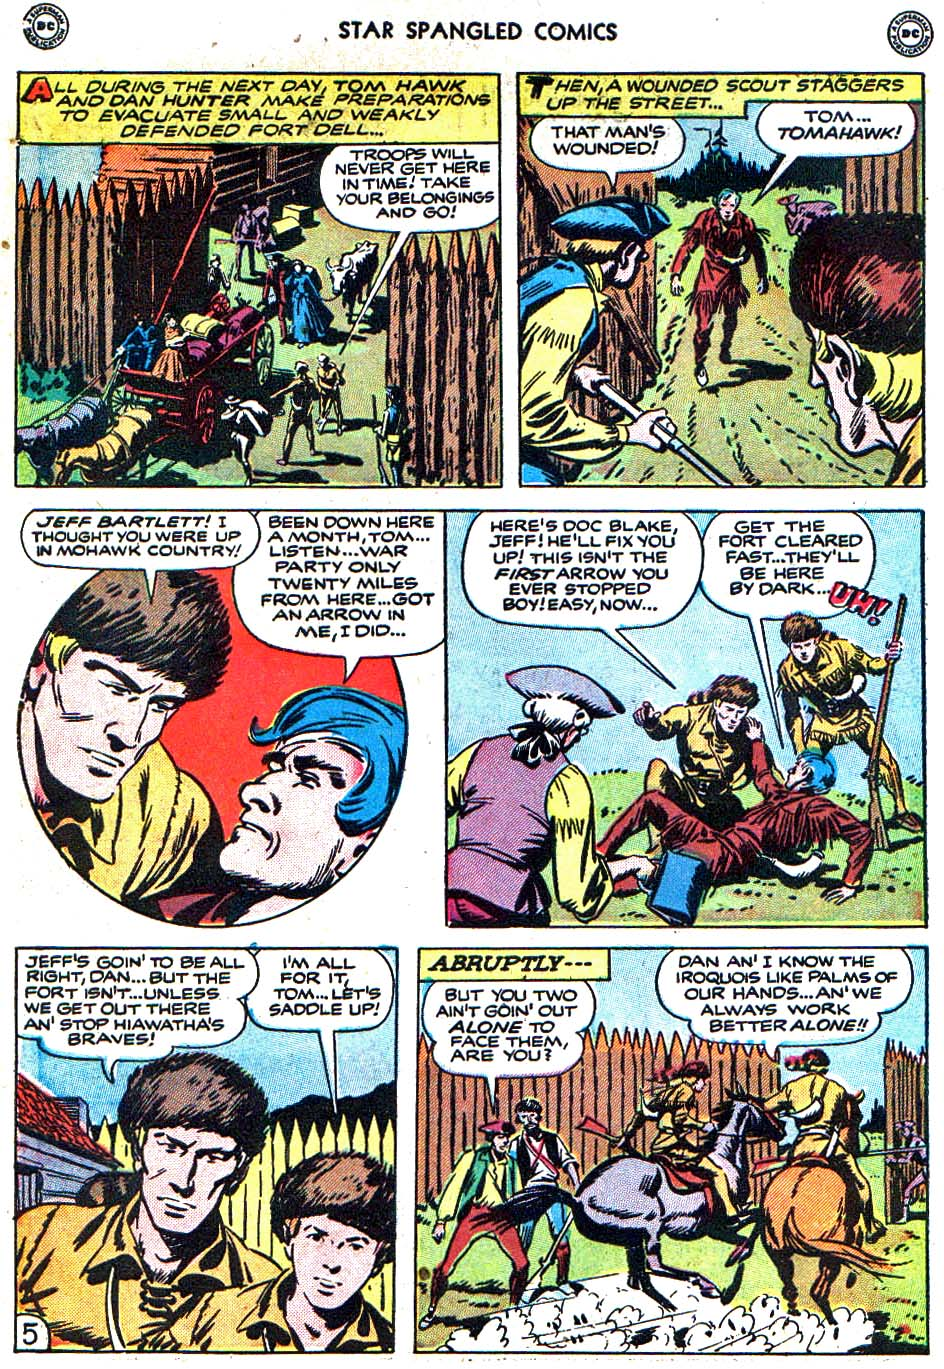 Star Spangled Comics (1941) issue 95 - Page 44